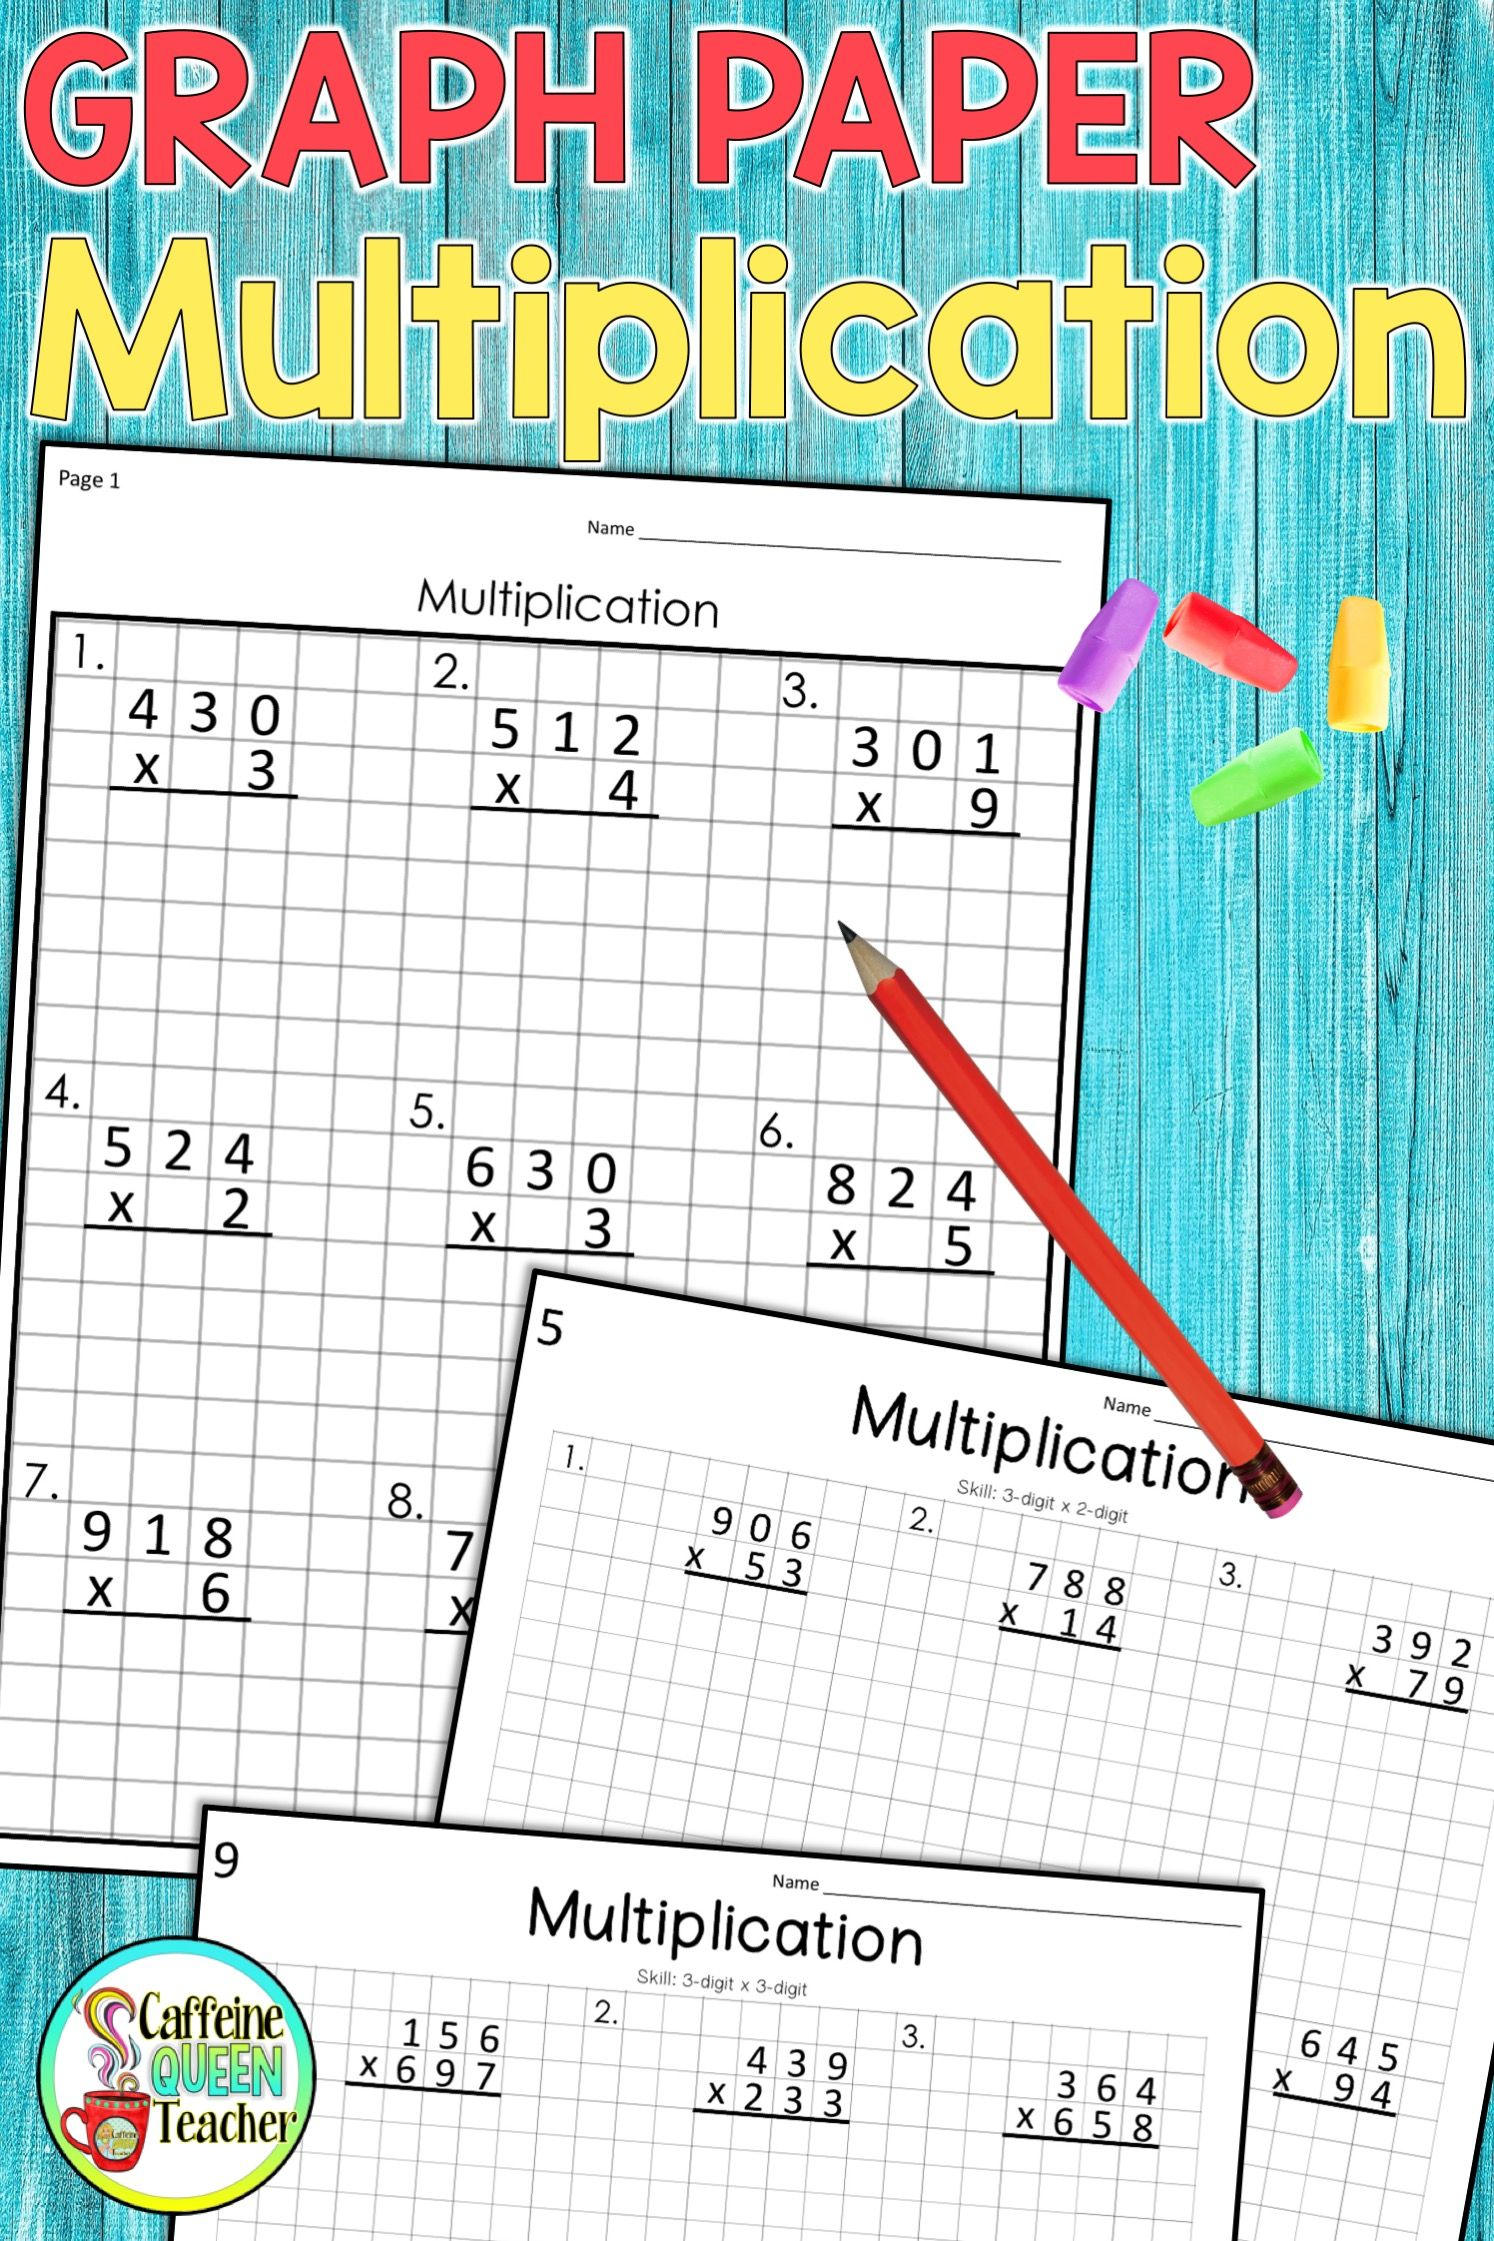 3 Digit Multiplication On Graph Paper Worksheets With